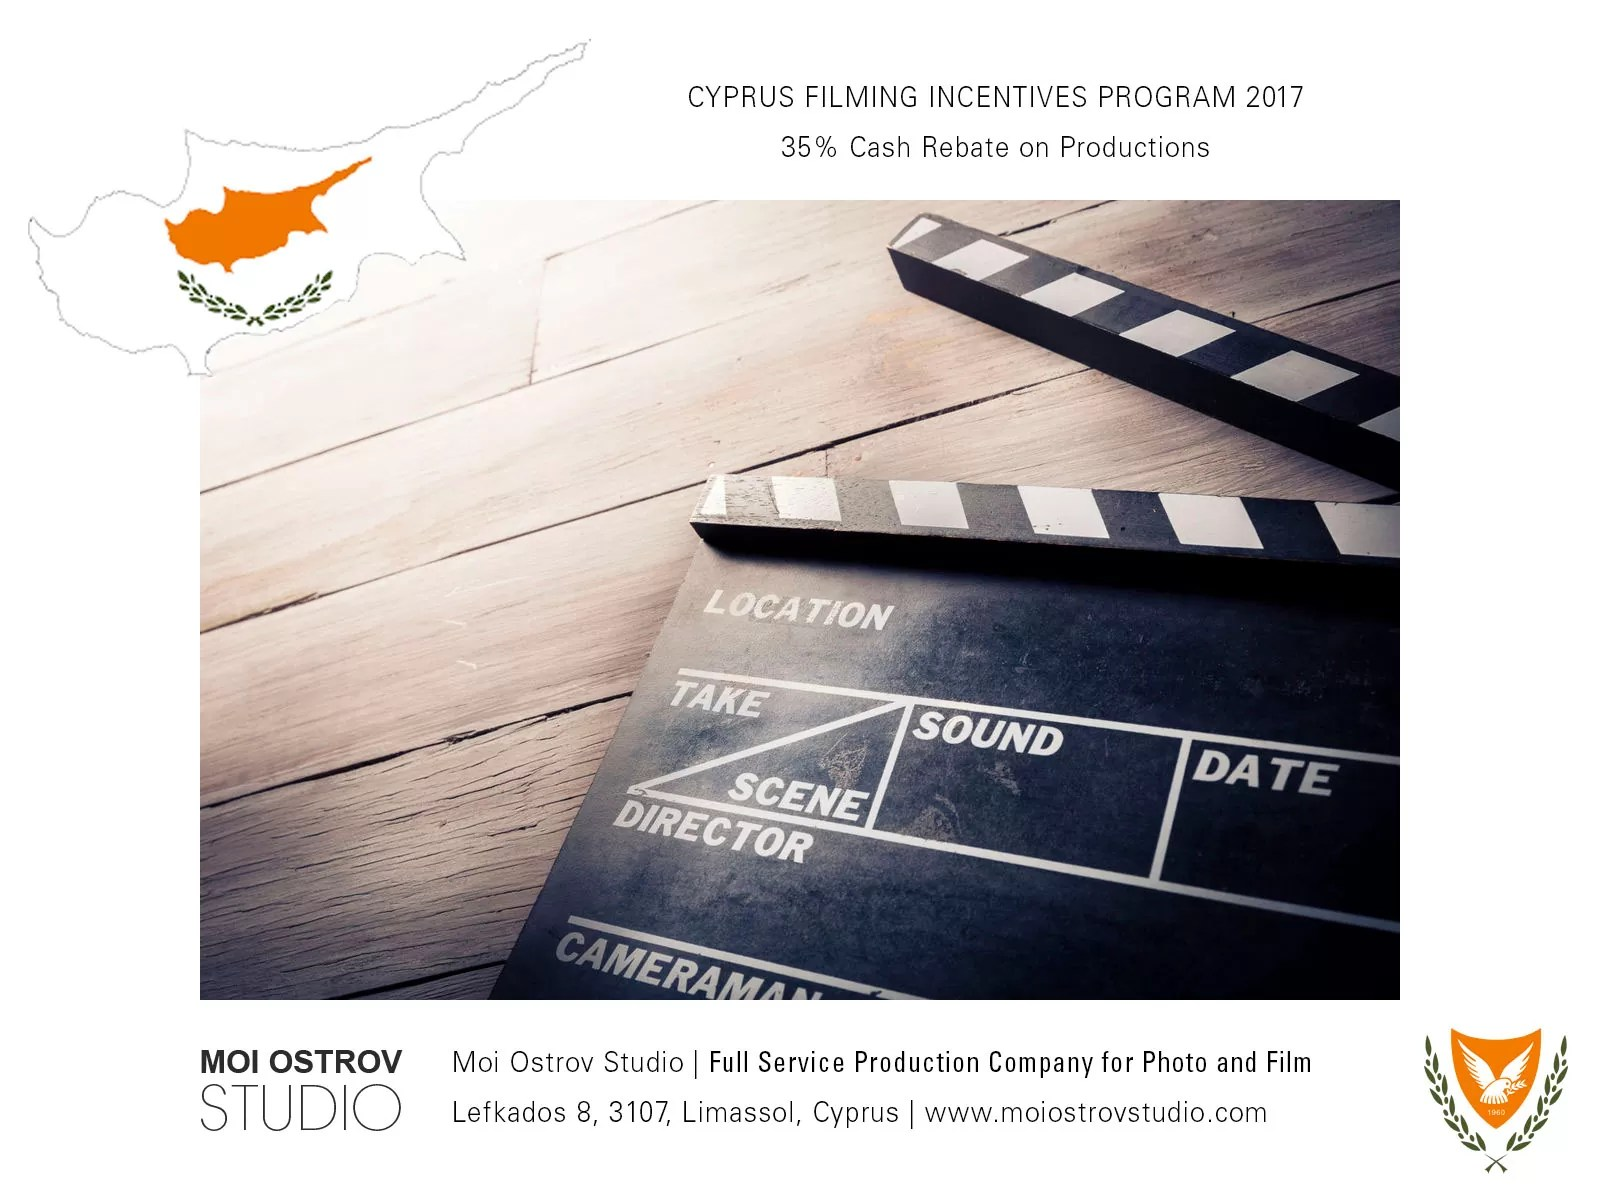 Cash incentives for filming in Cyprus